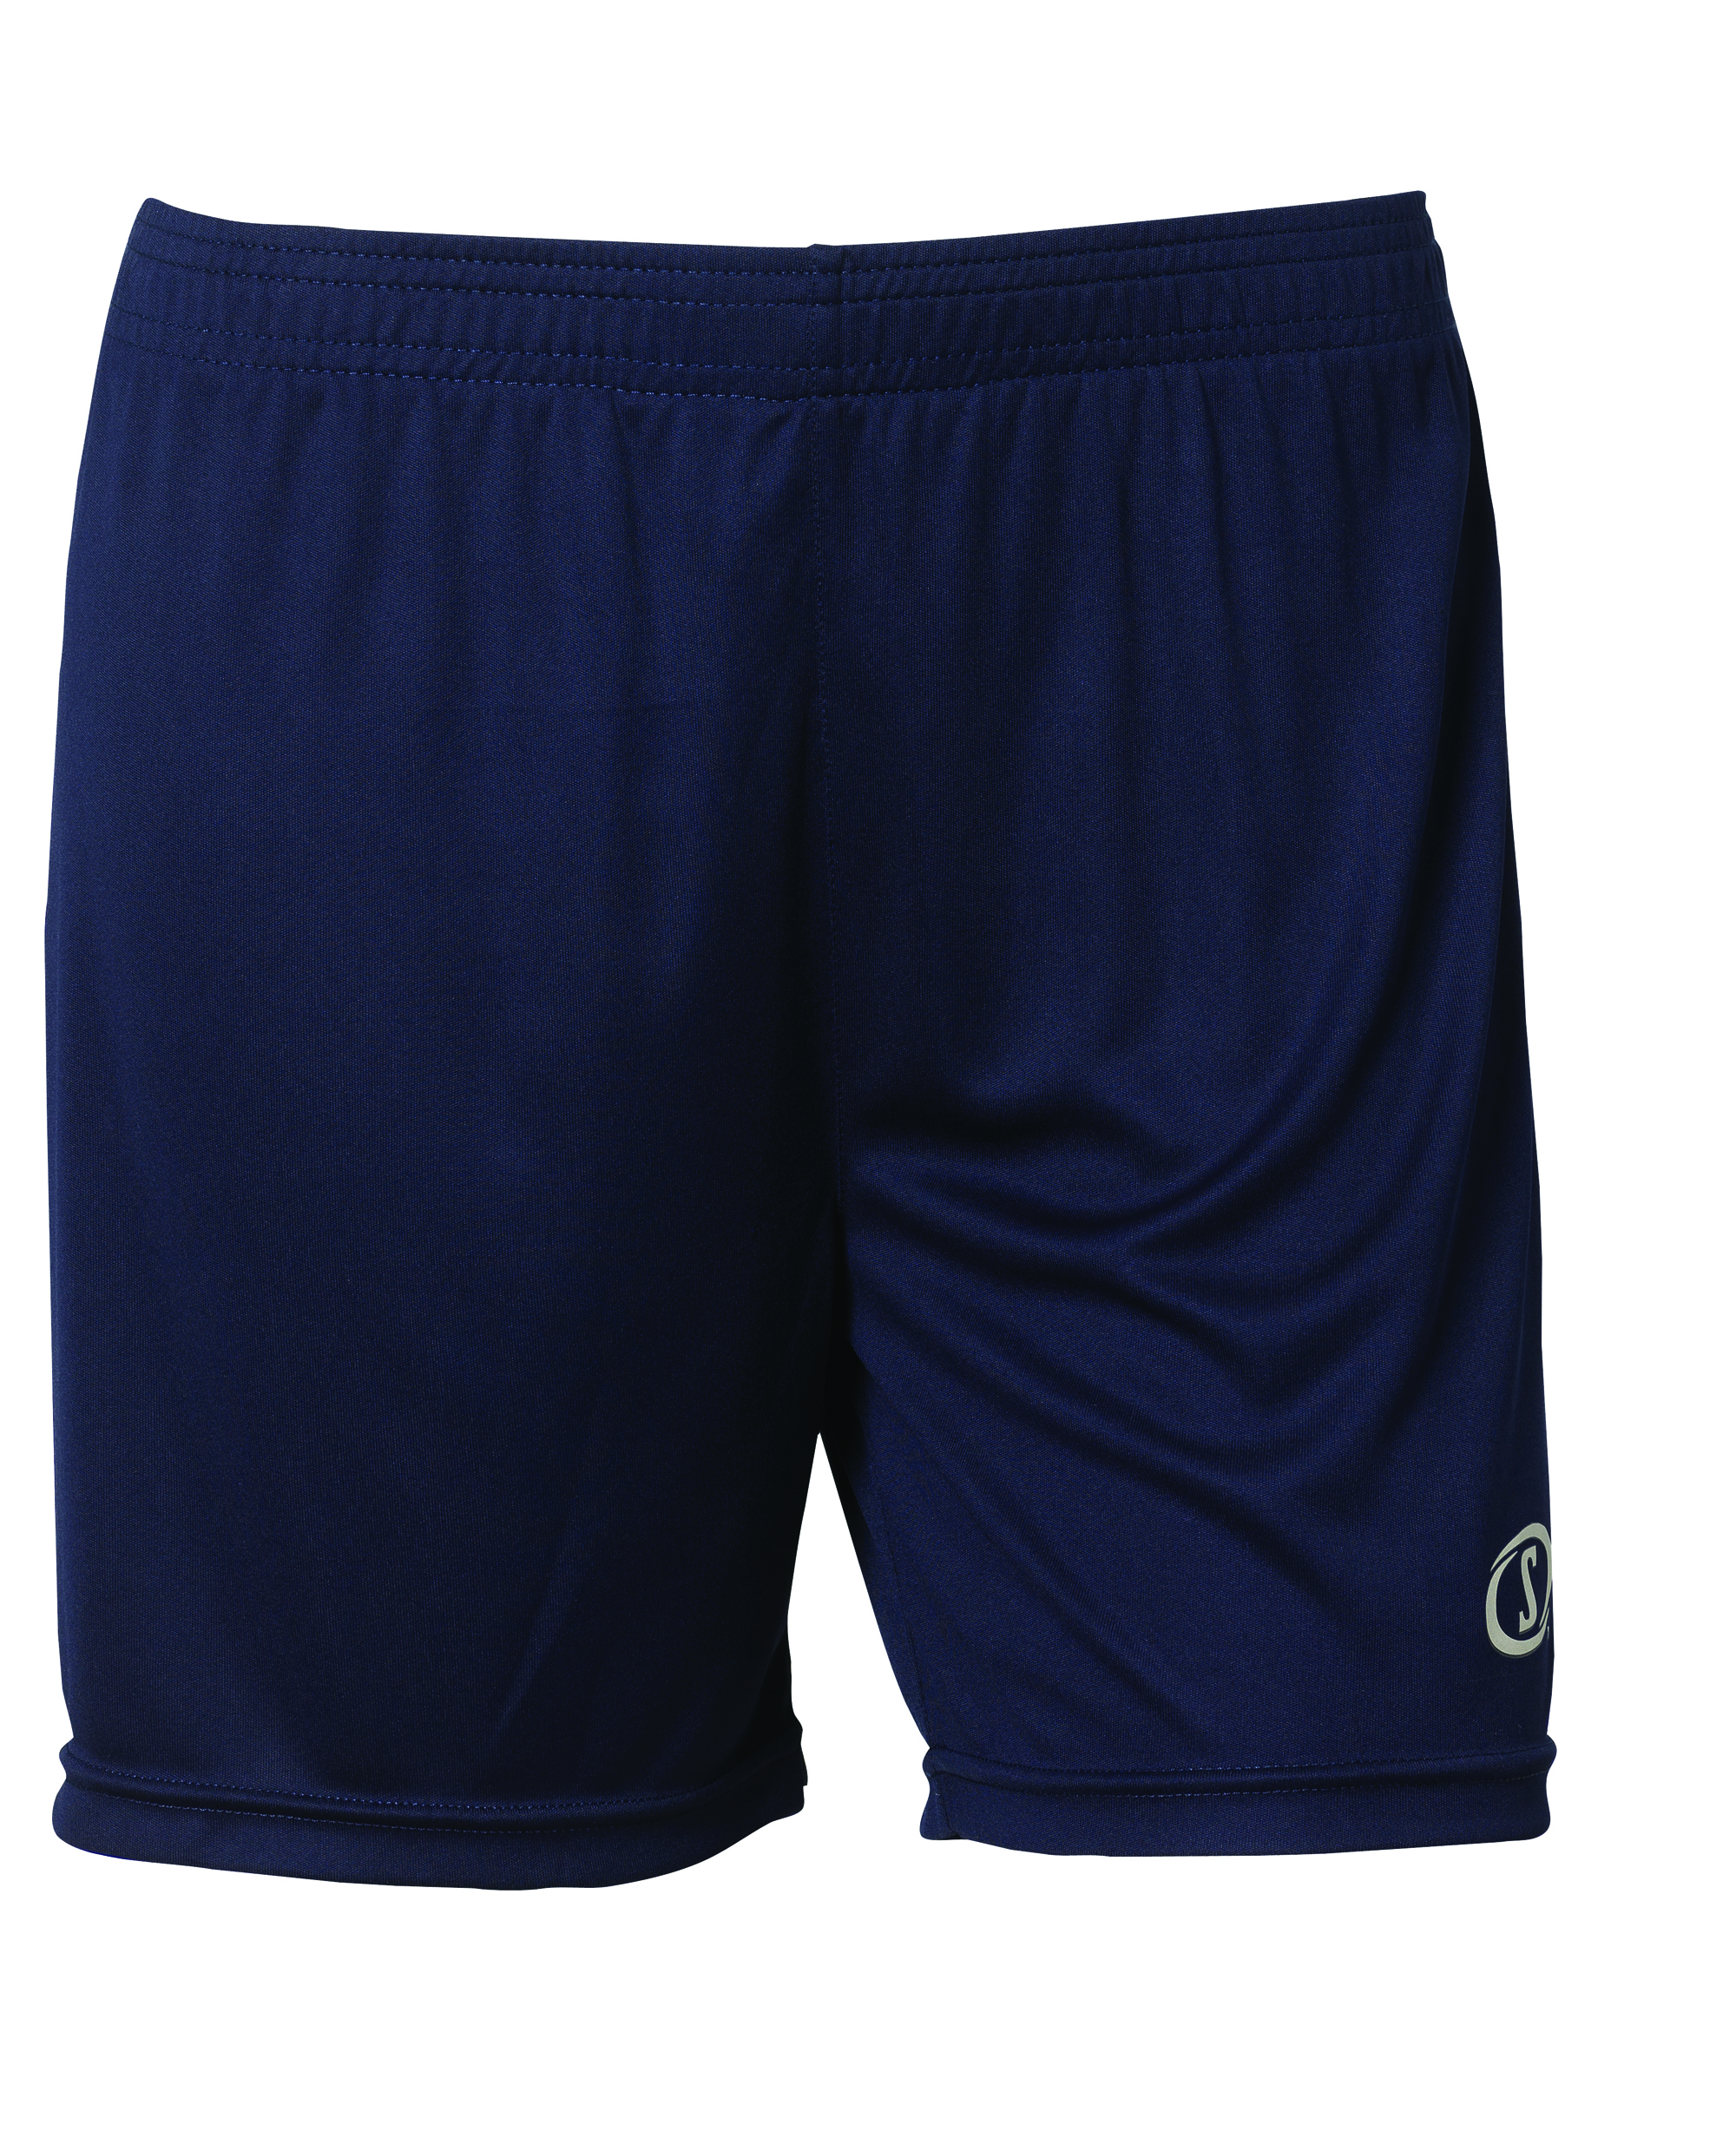 Kids Core Training Shorts - Navy - 128